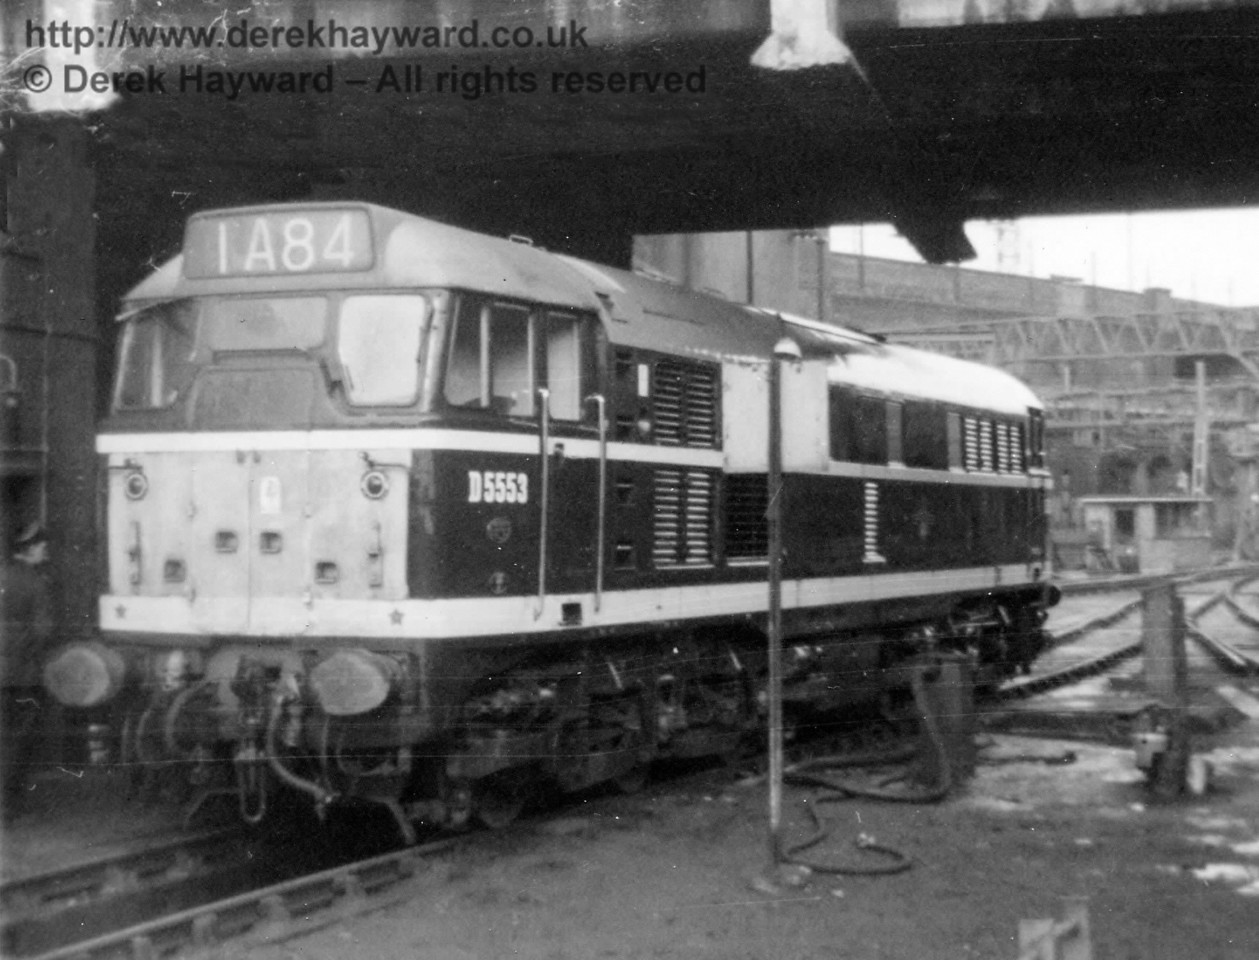 After some searching in my archives I have managed to find this old (unfortunately damaged) image of D5553 (Class 31) at Liverpool Street on an unknown date.